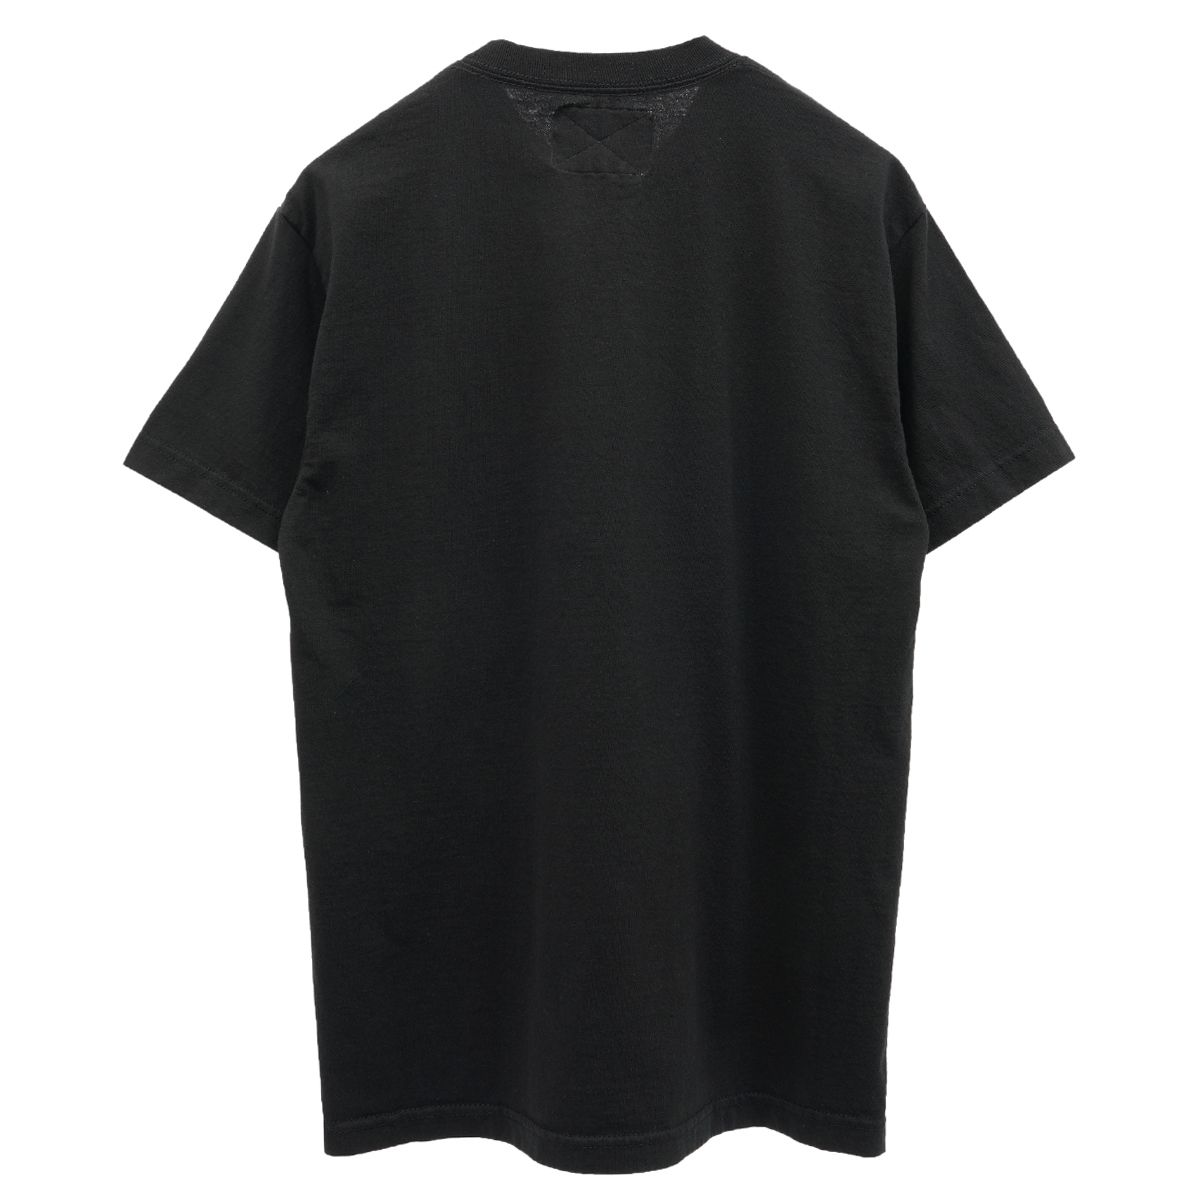 I CANT DECIDE YET WET T-SHIRT / 15